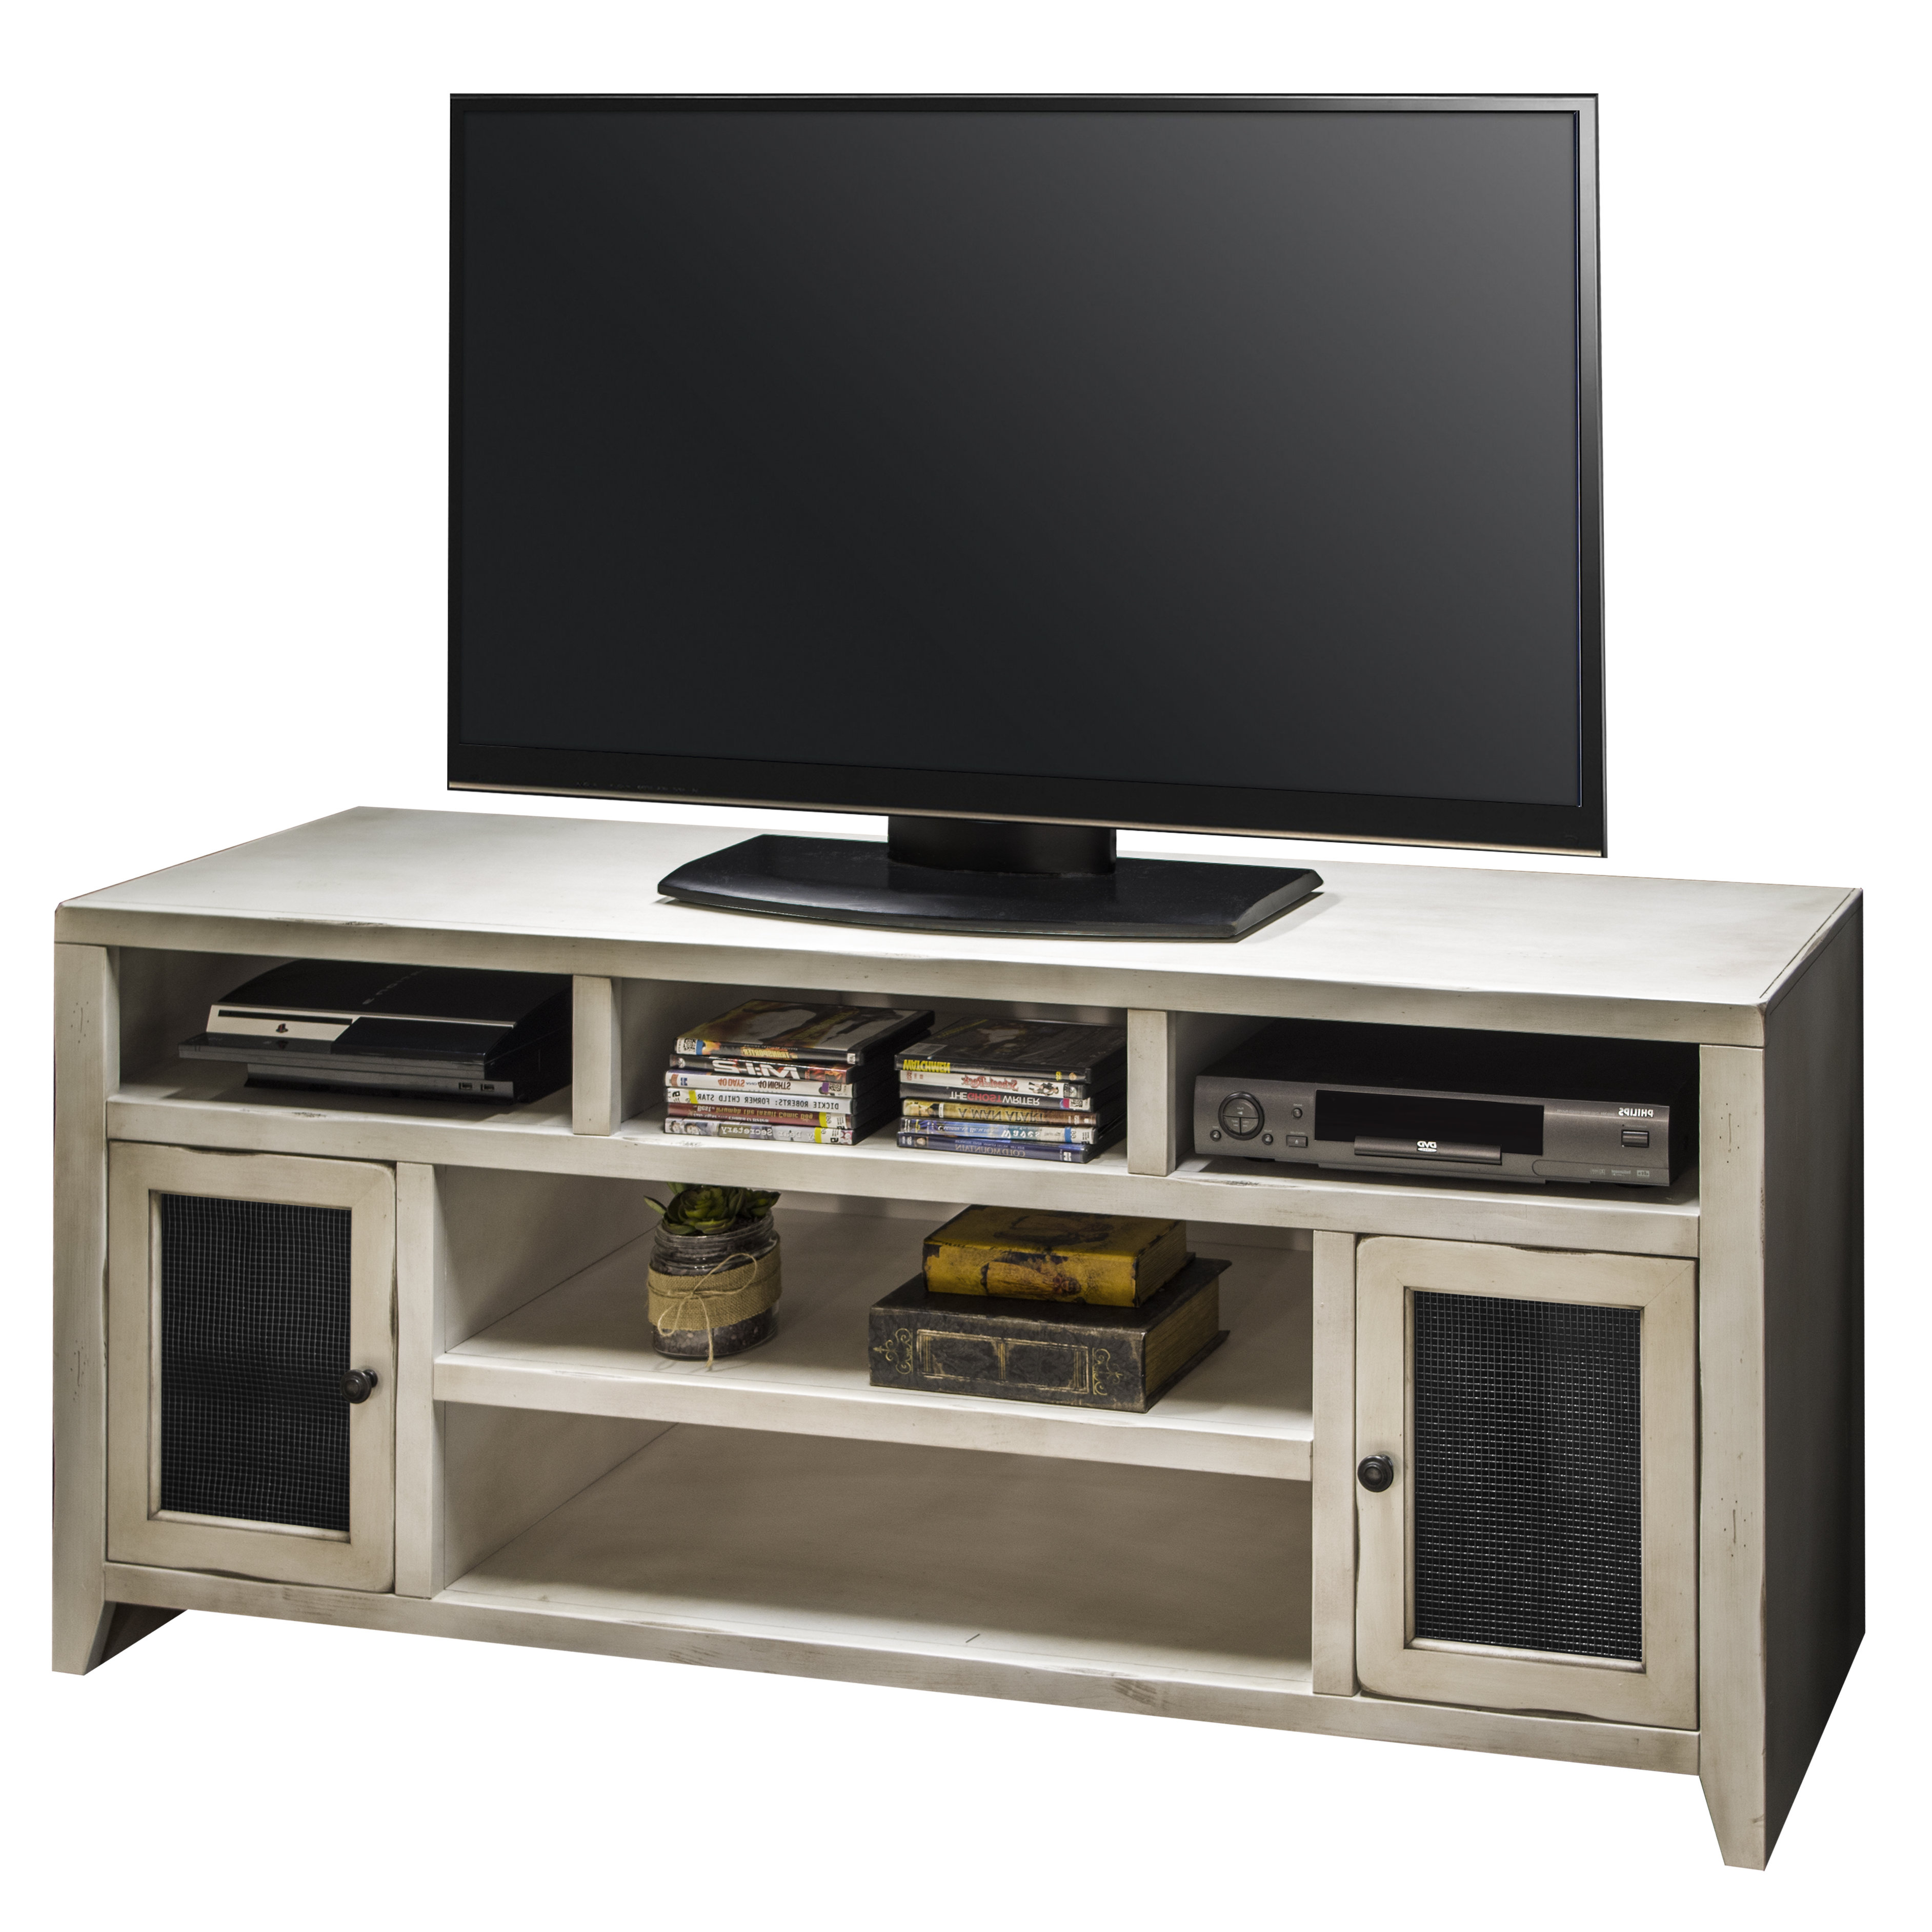 70 Inch Tv Stands | Joss & Main Intended For Bale Rustic Grey 82 Inch Tv Stands (View 11 of 20)